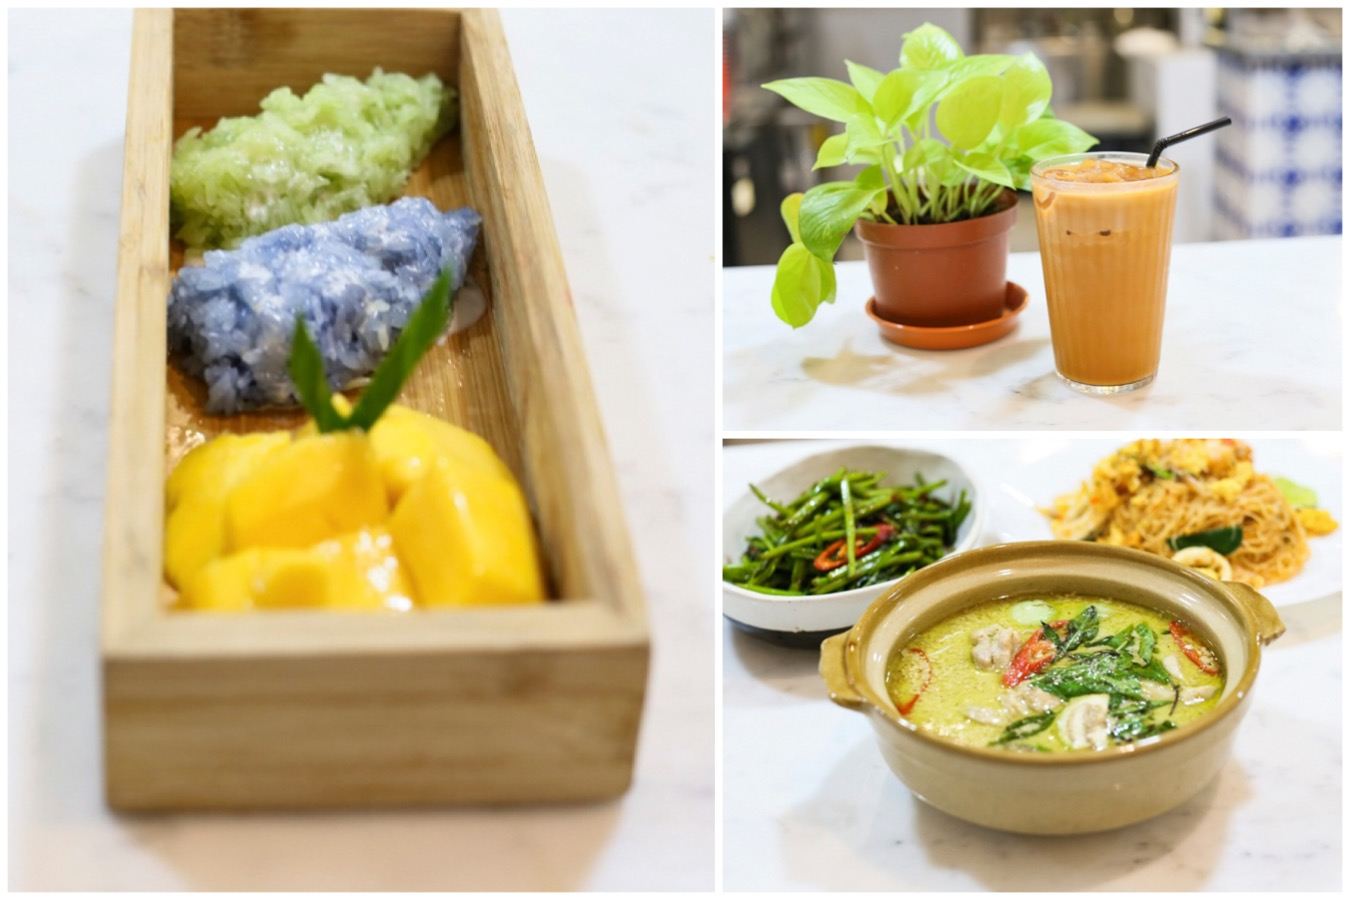 The Thai Street Co - Modern Thai Eatery At Alexandra, With Aroy Purple Mango Sticky Rice